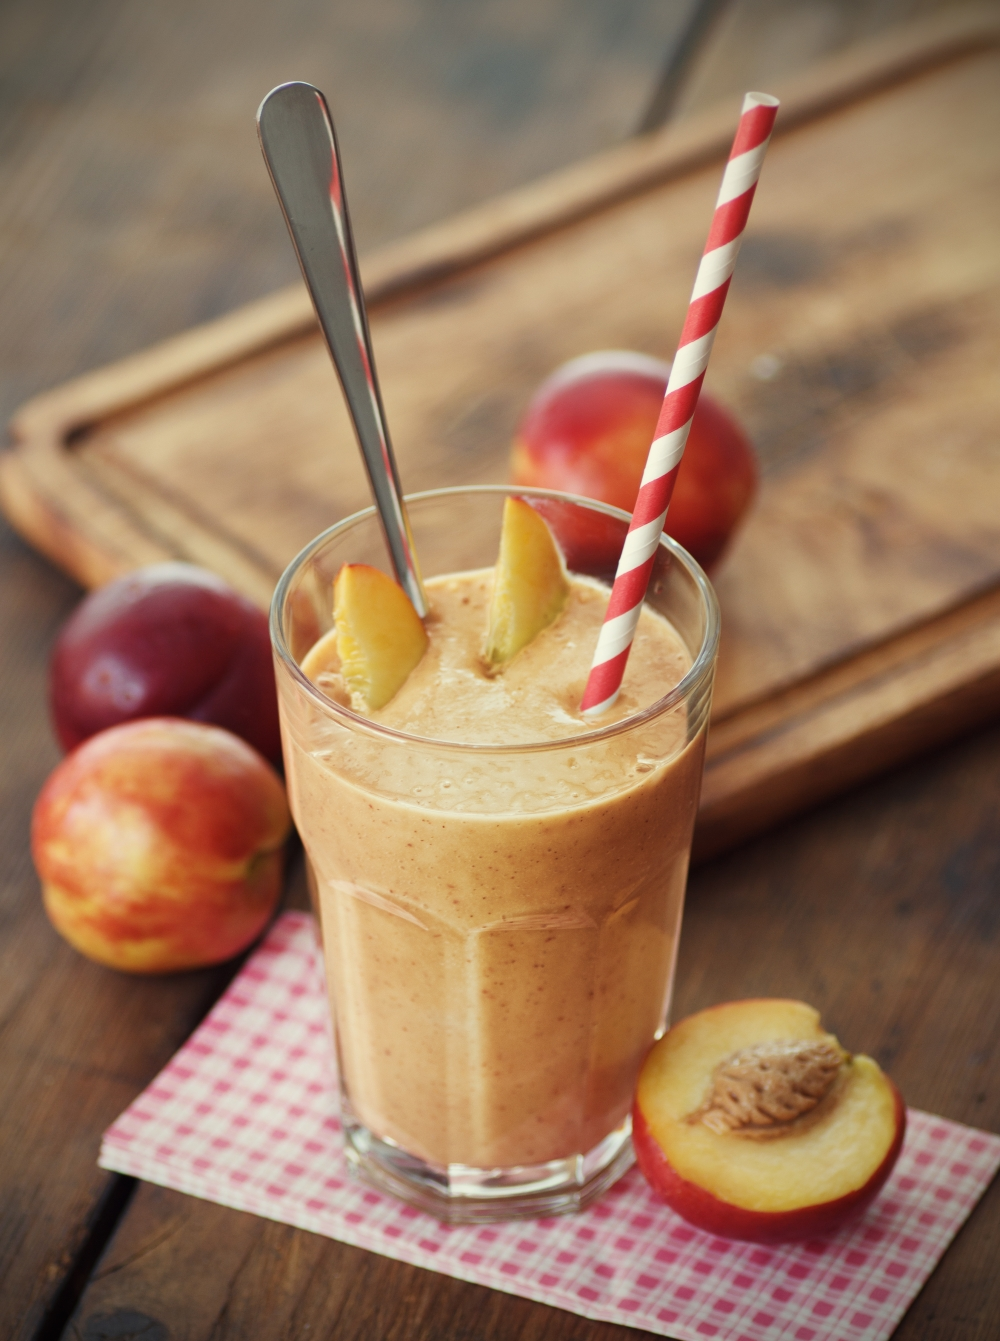 Blueberry Peach Anti Aging Smoothie All Nutribullet Recipes